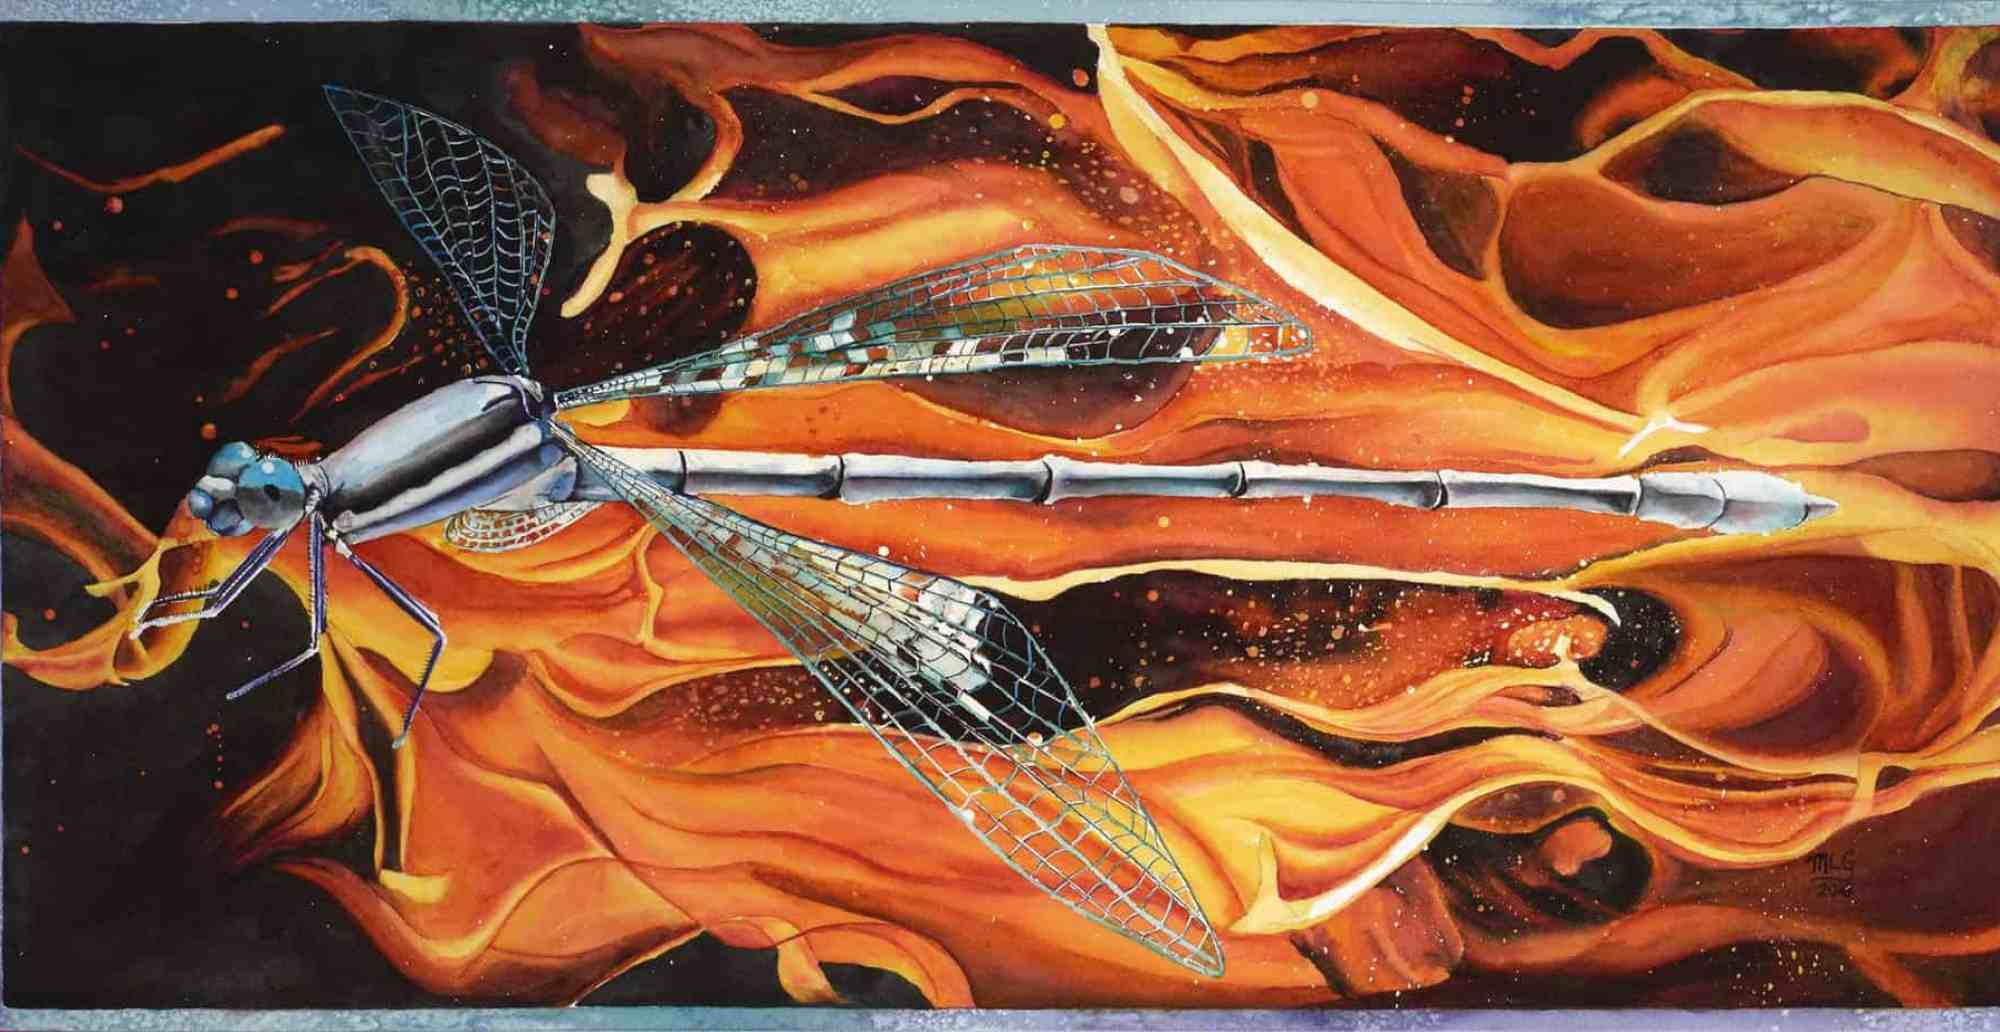 Portrait of a Dragonfly Surrounded by Fire by Michelle Goggans